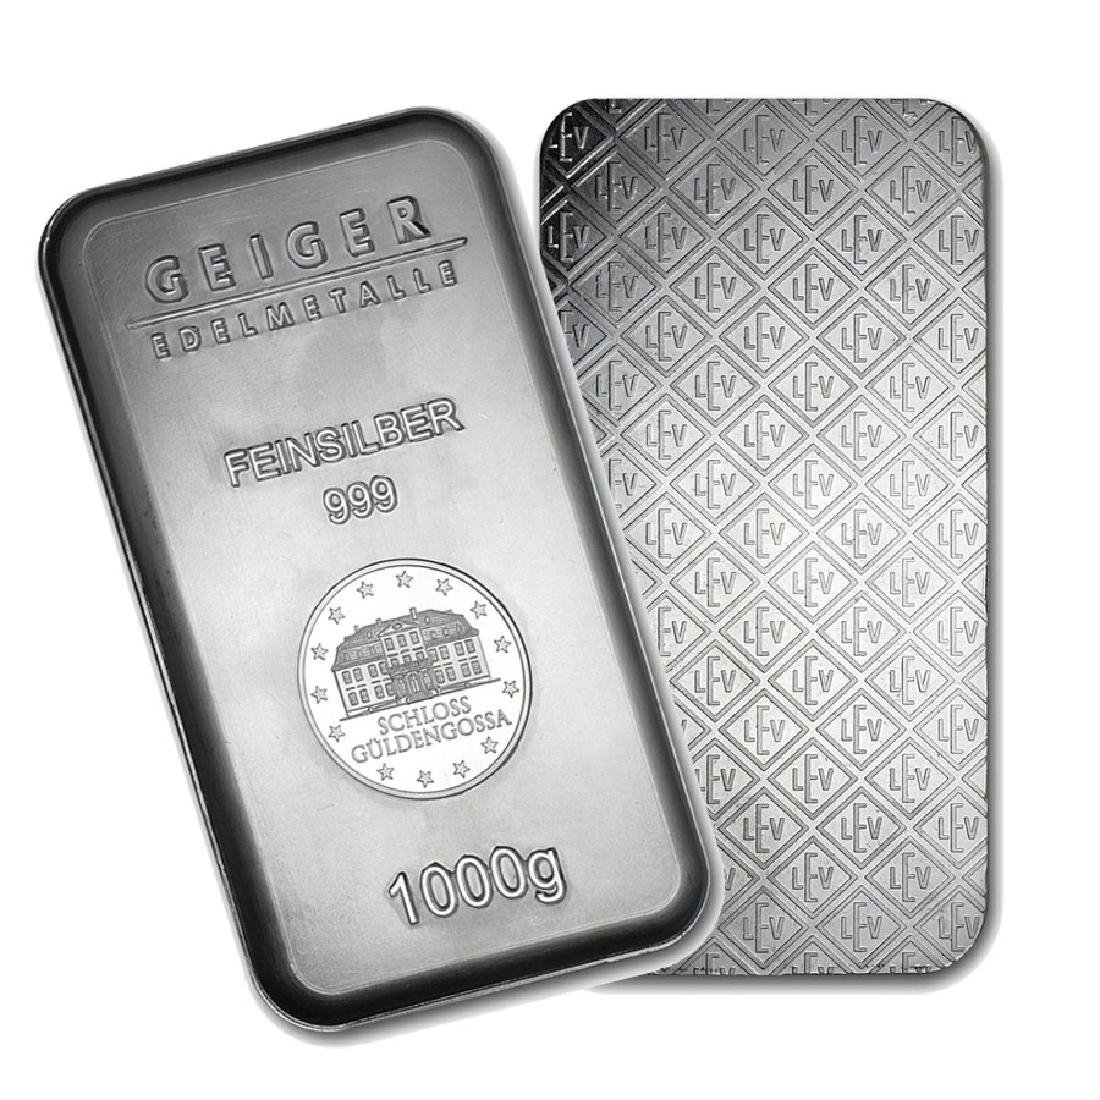 One piece 1 kilo 0.999 Fine Silver Bar Geiger Security